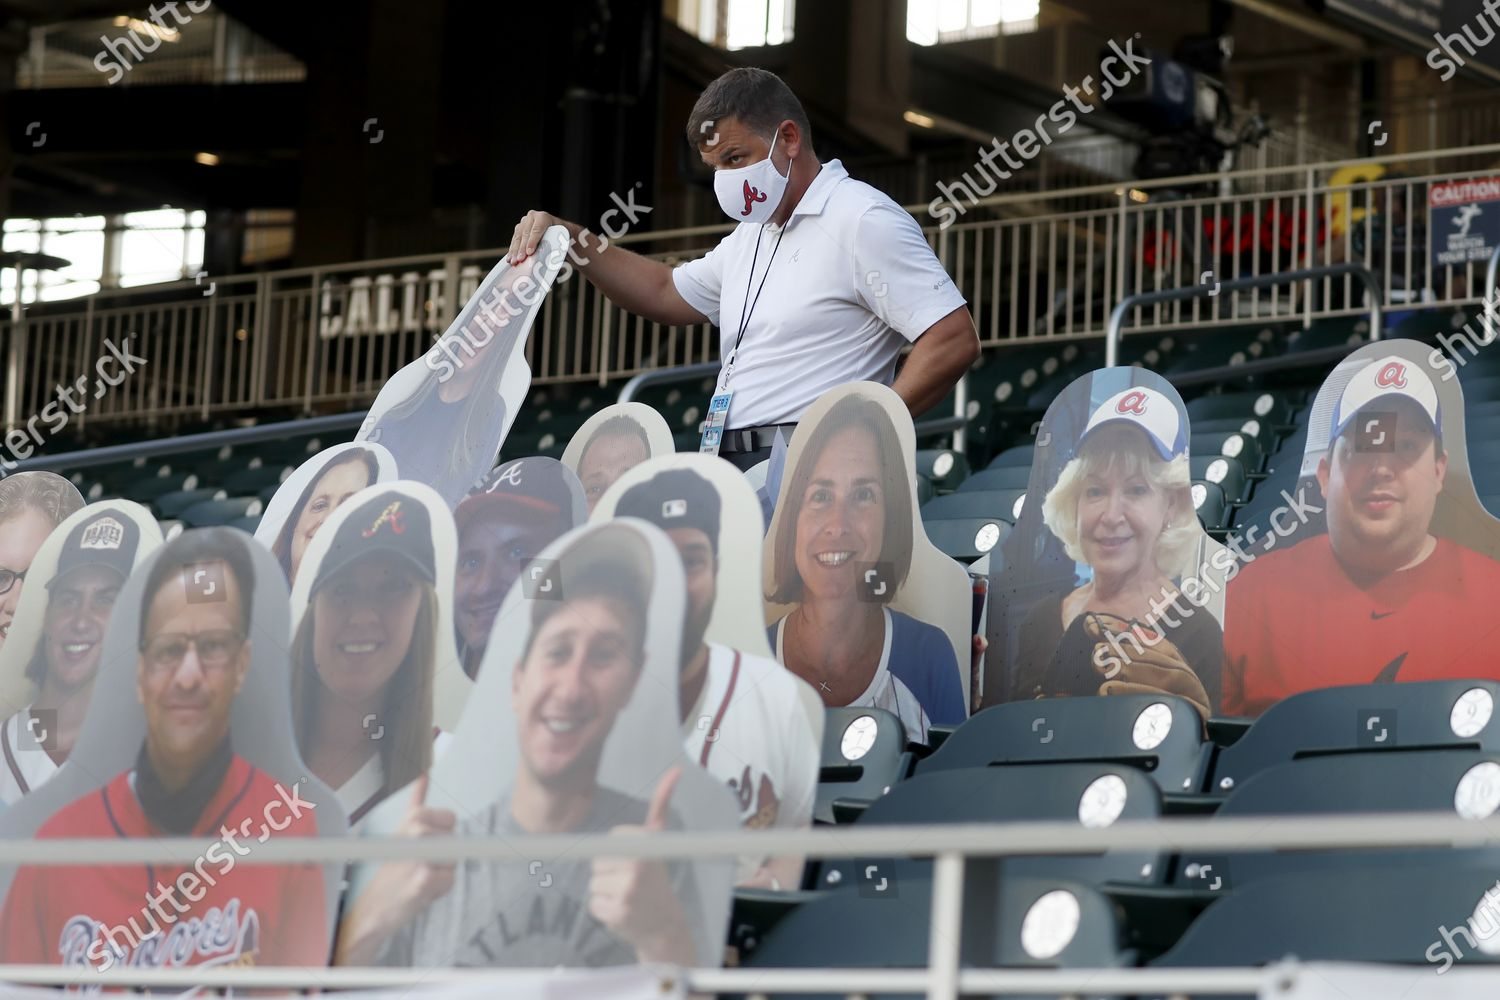 Atlanta Braves Employee Places Cardboard Cutouts Fans Editorial Stock Photo Stock Image Shutterstock